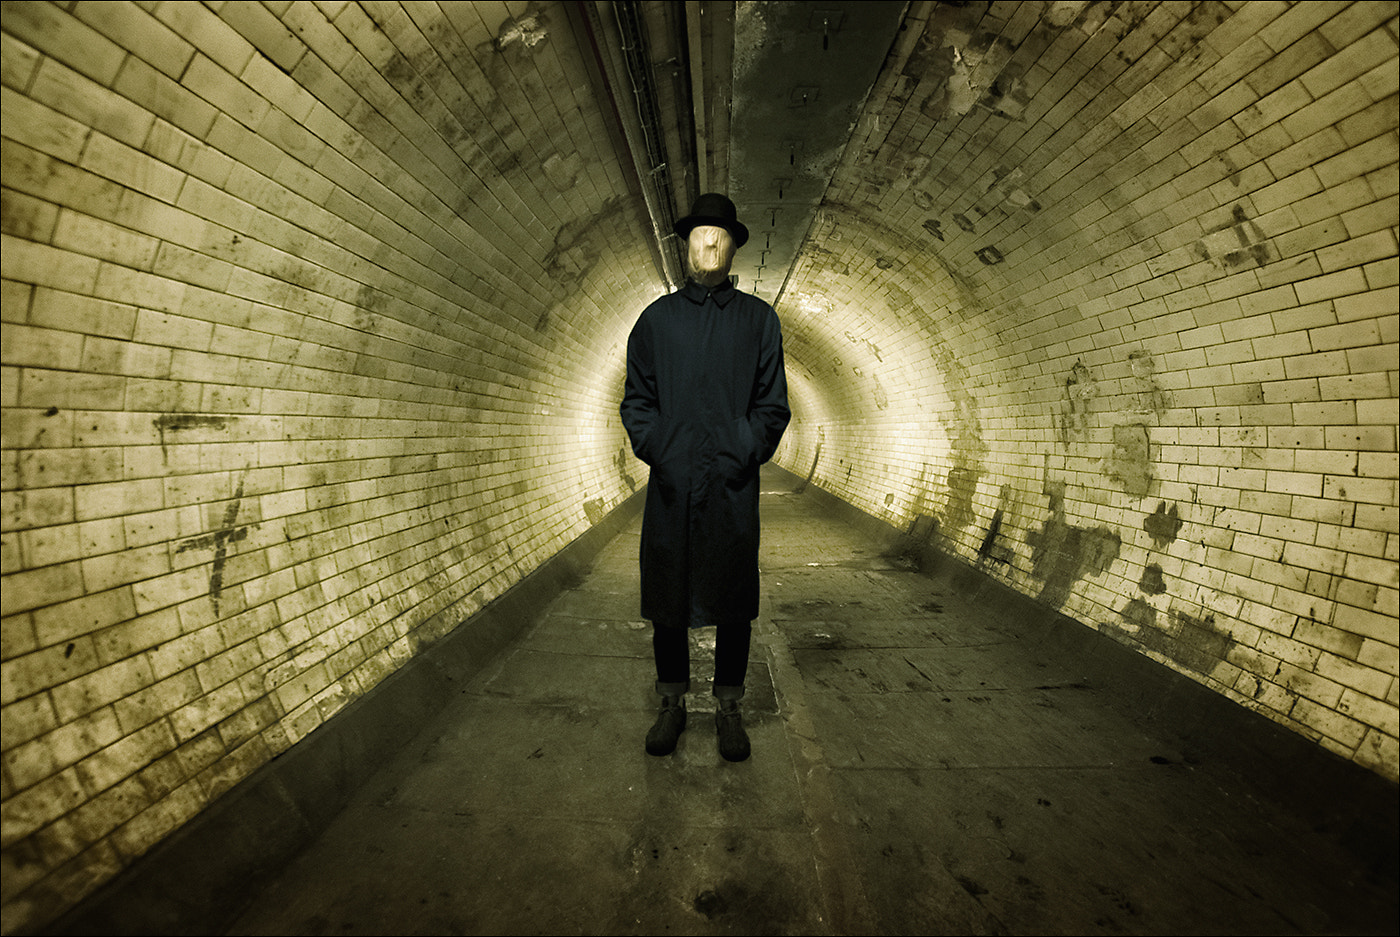 Photograph The Man with Tunnel Vision by Gary Howells on 500px